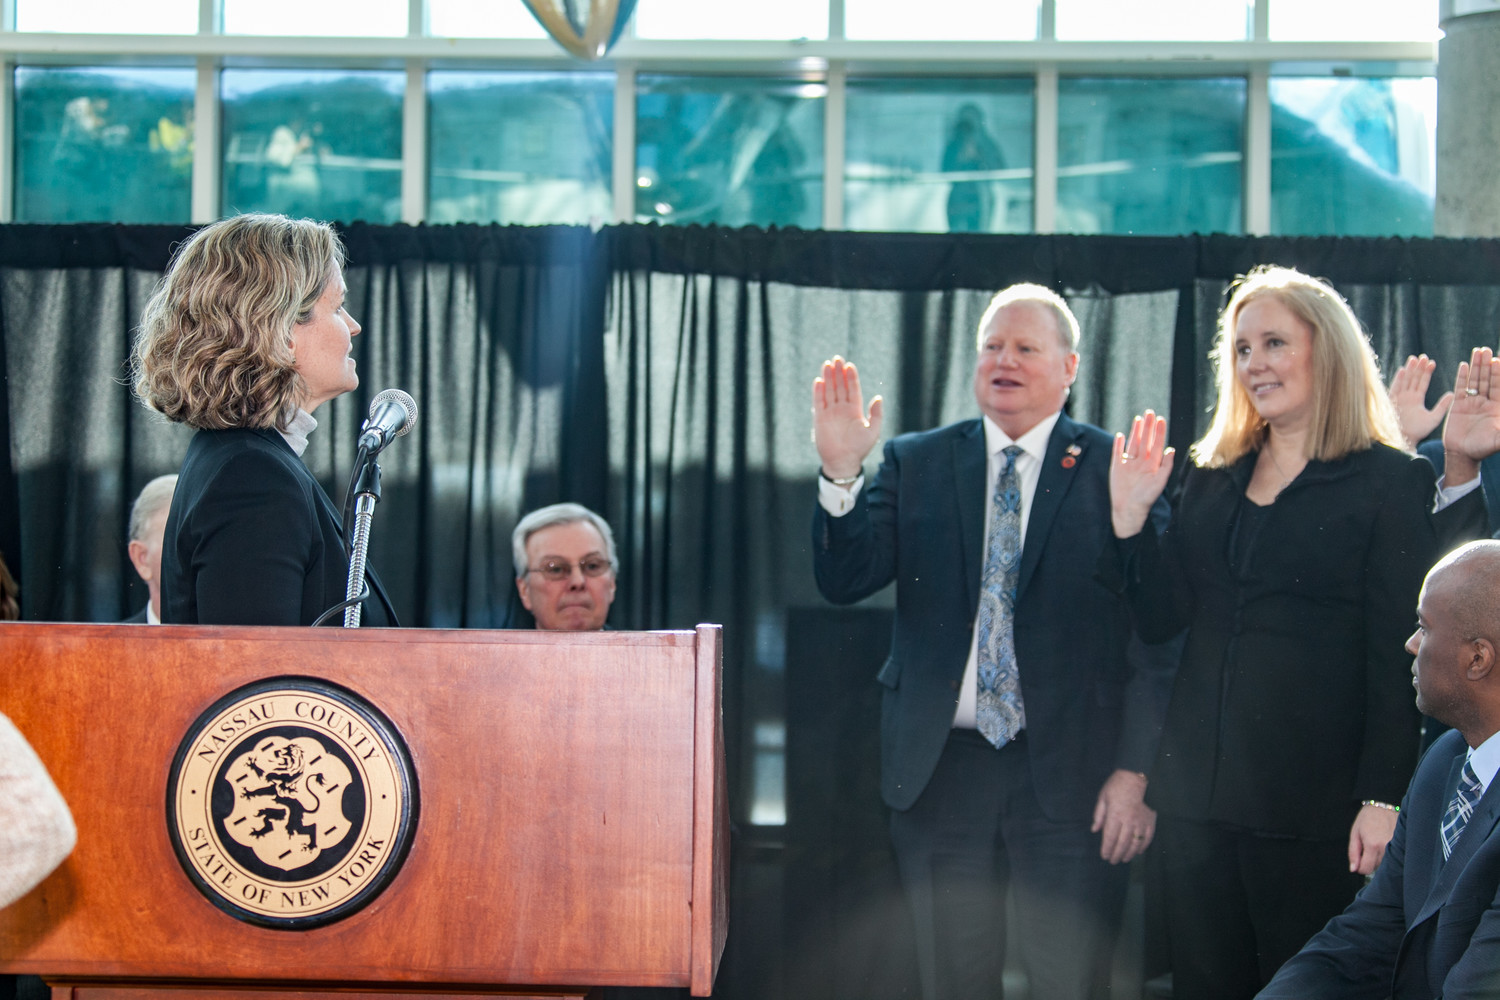 County Executive Laura Curran, left, swore in Delia DeRiggi-Whitton for her fourth term as county legislator.